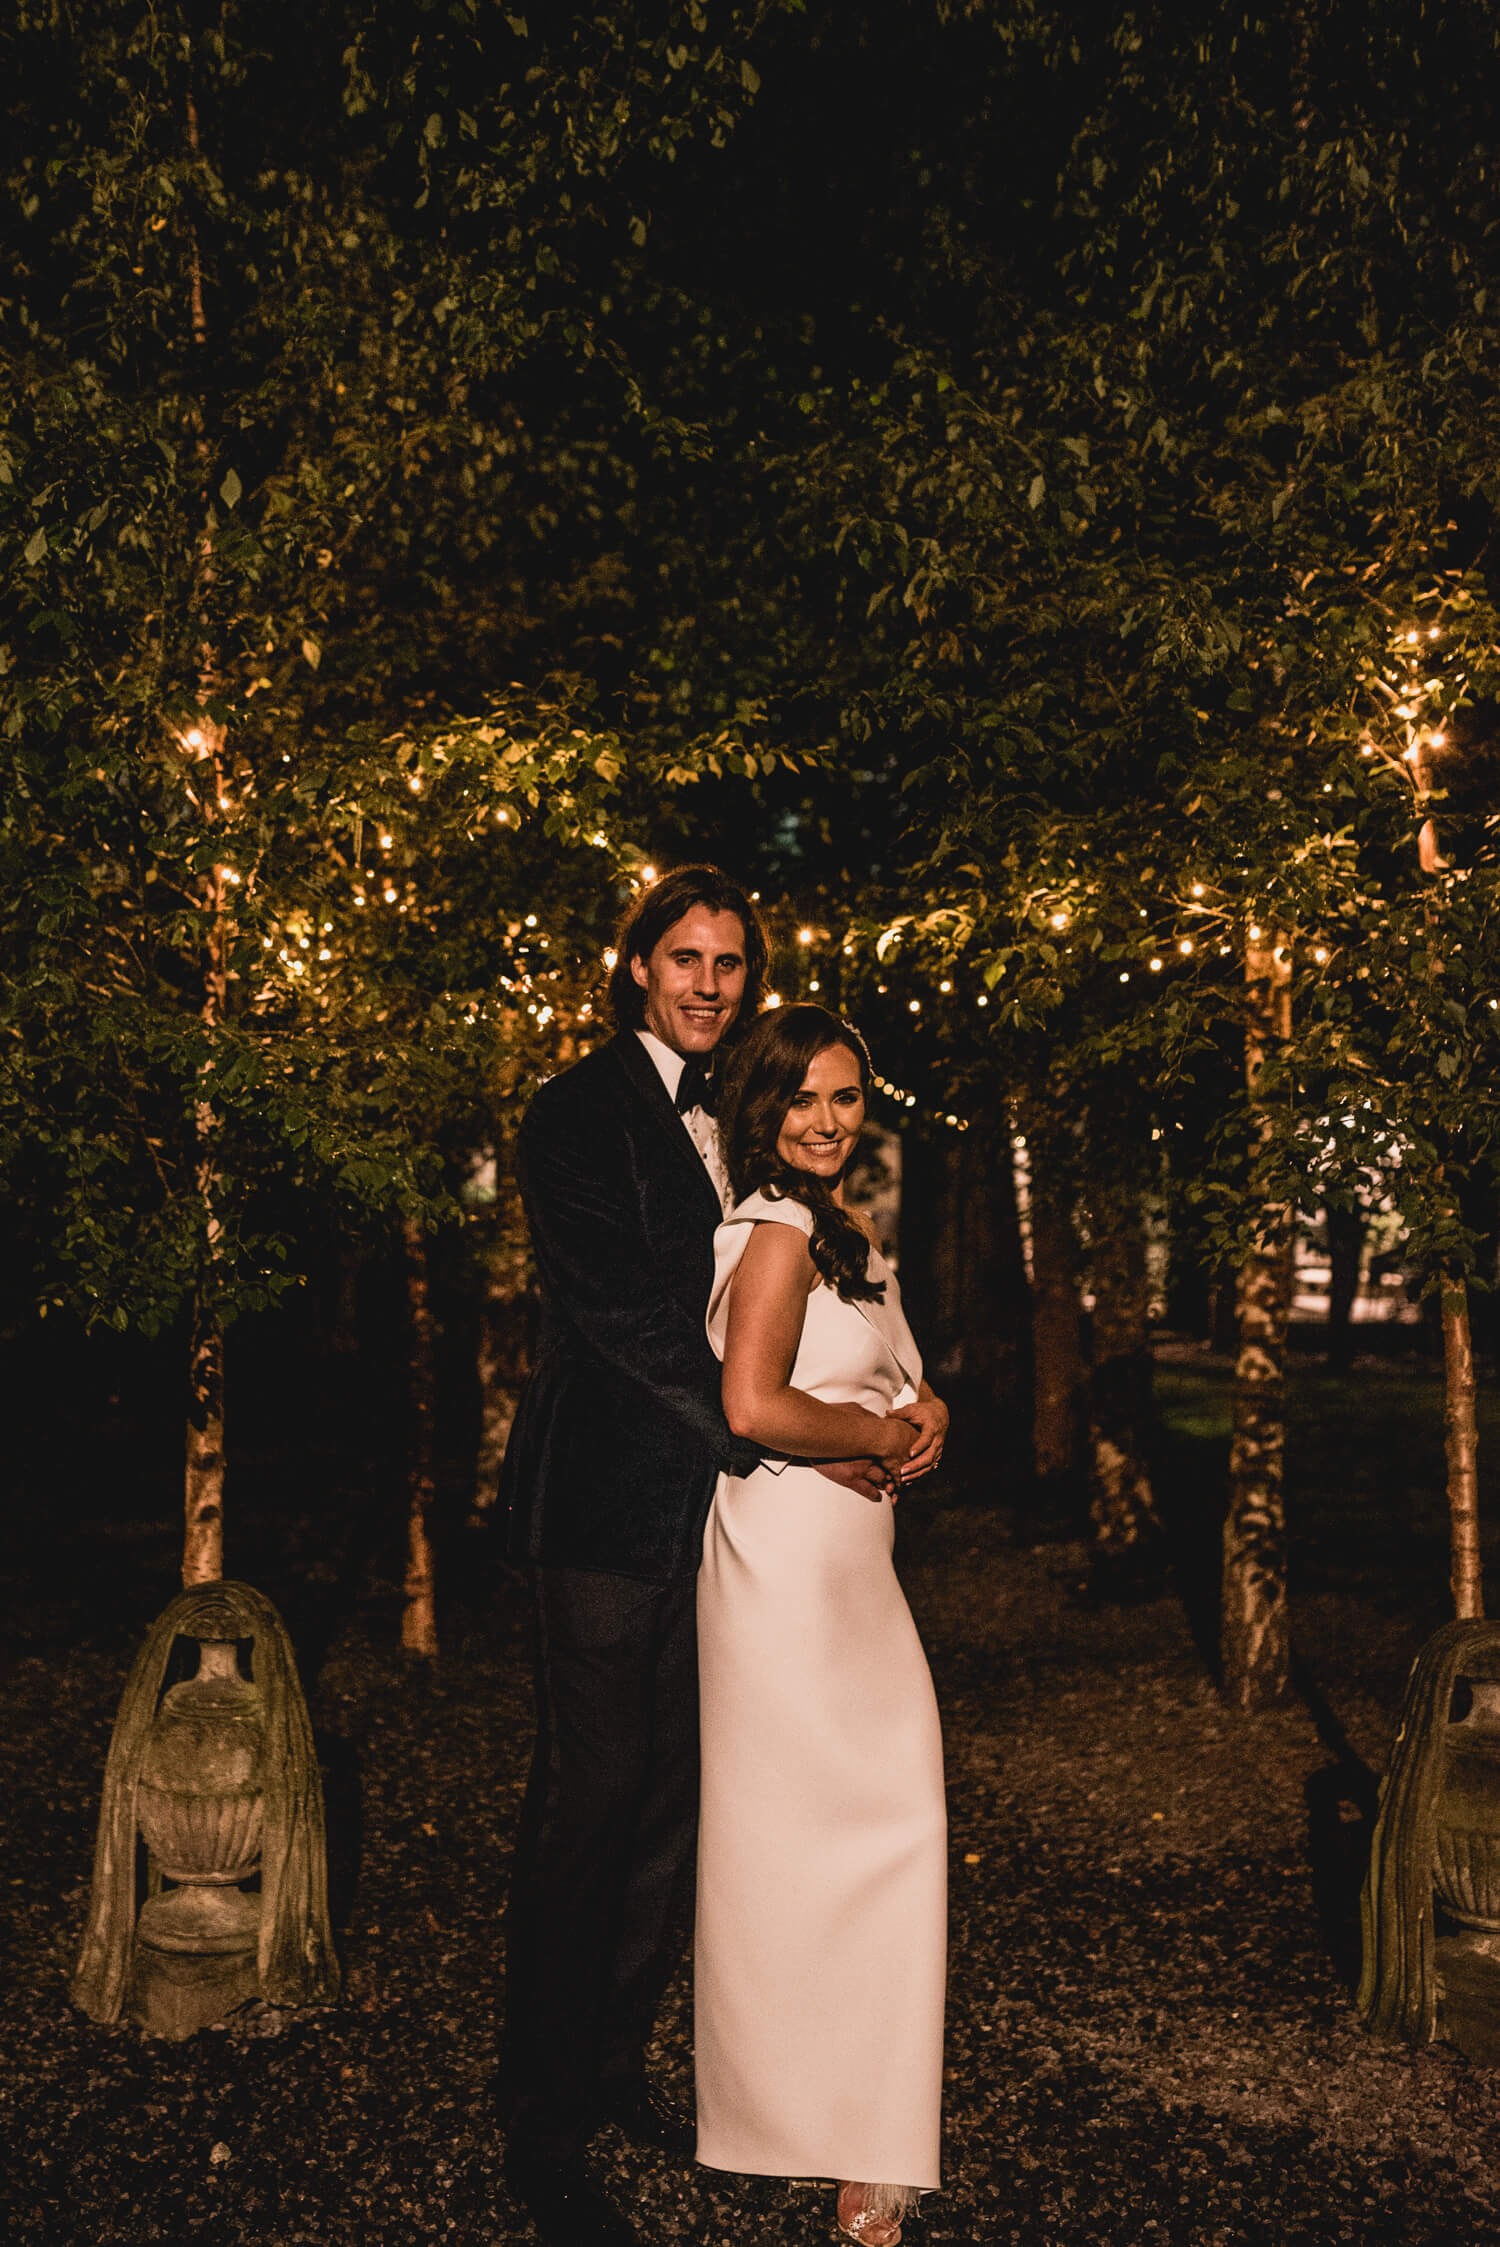 Bride and Groom at Night